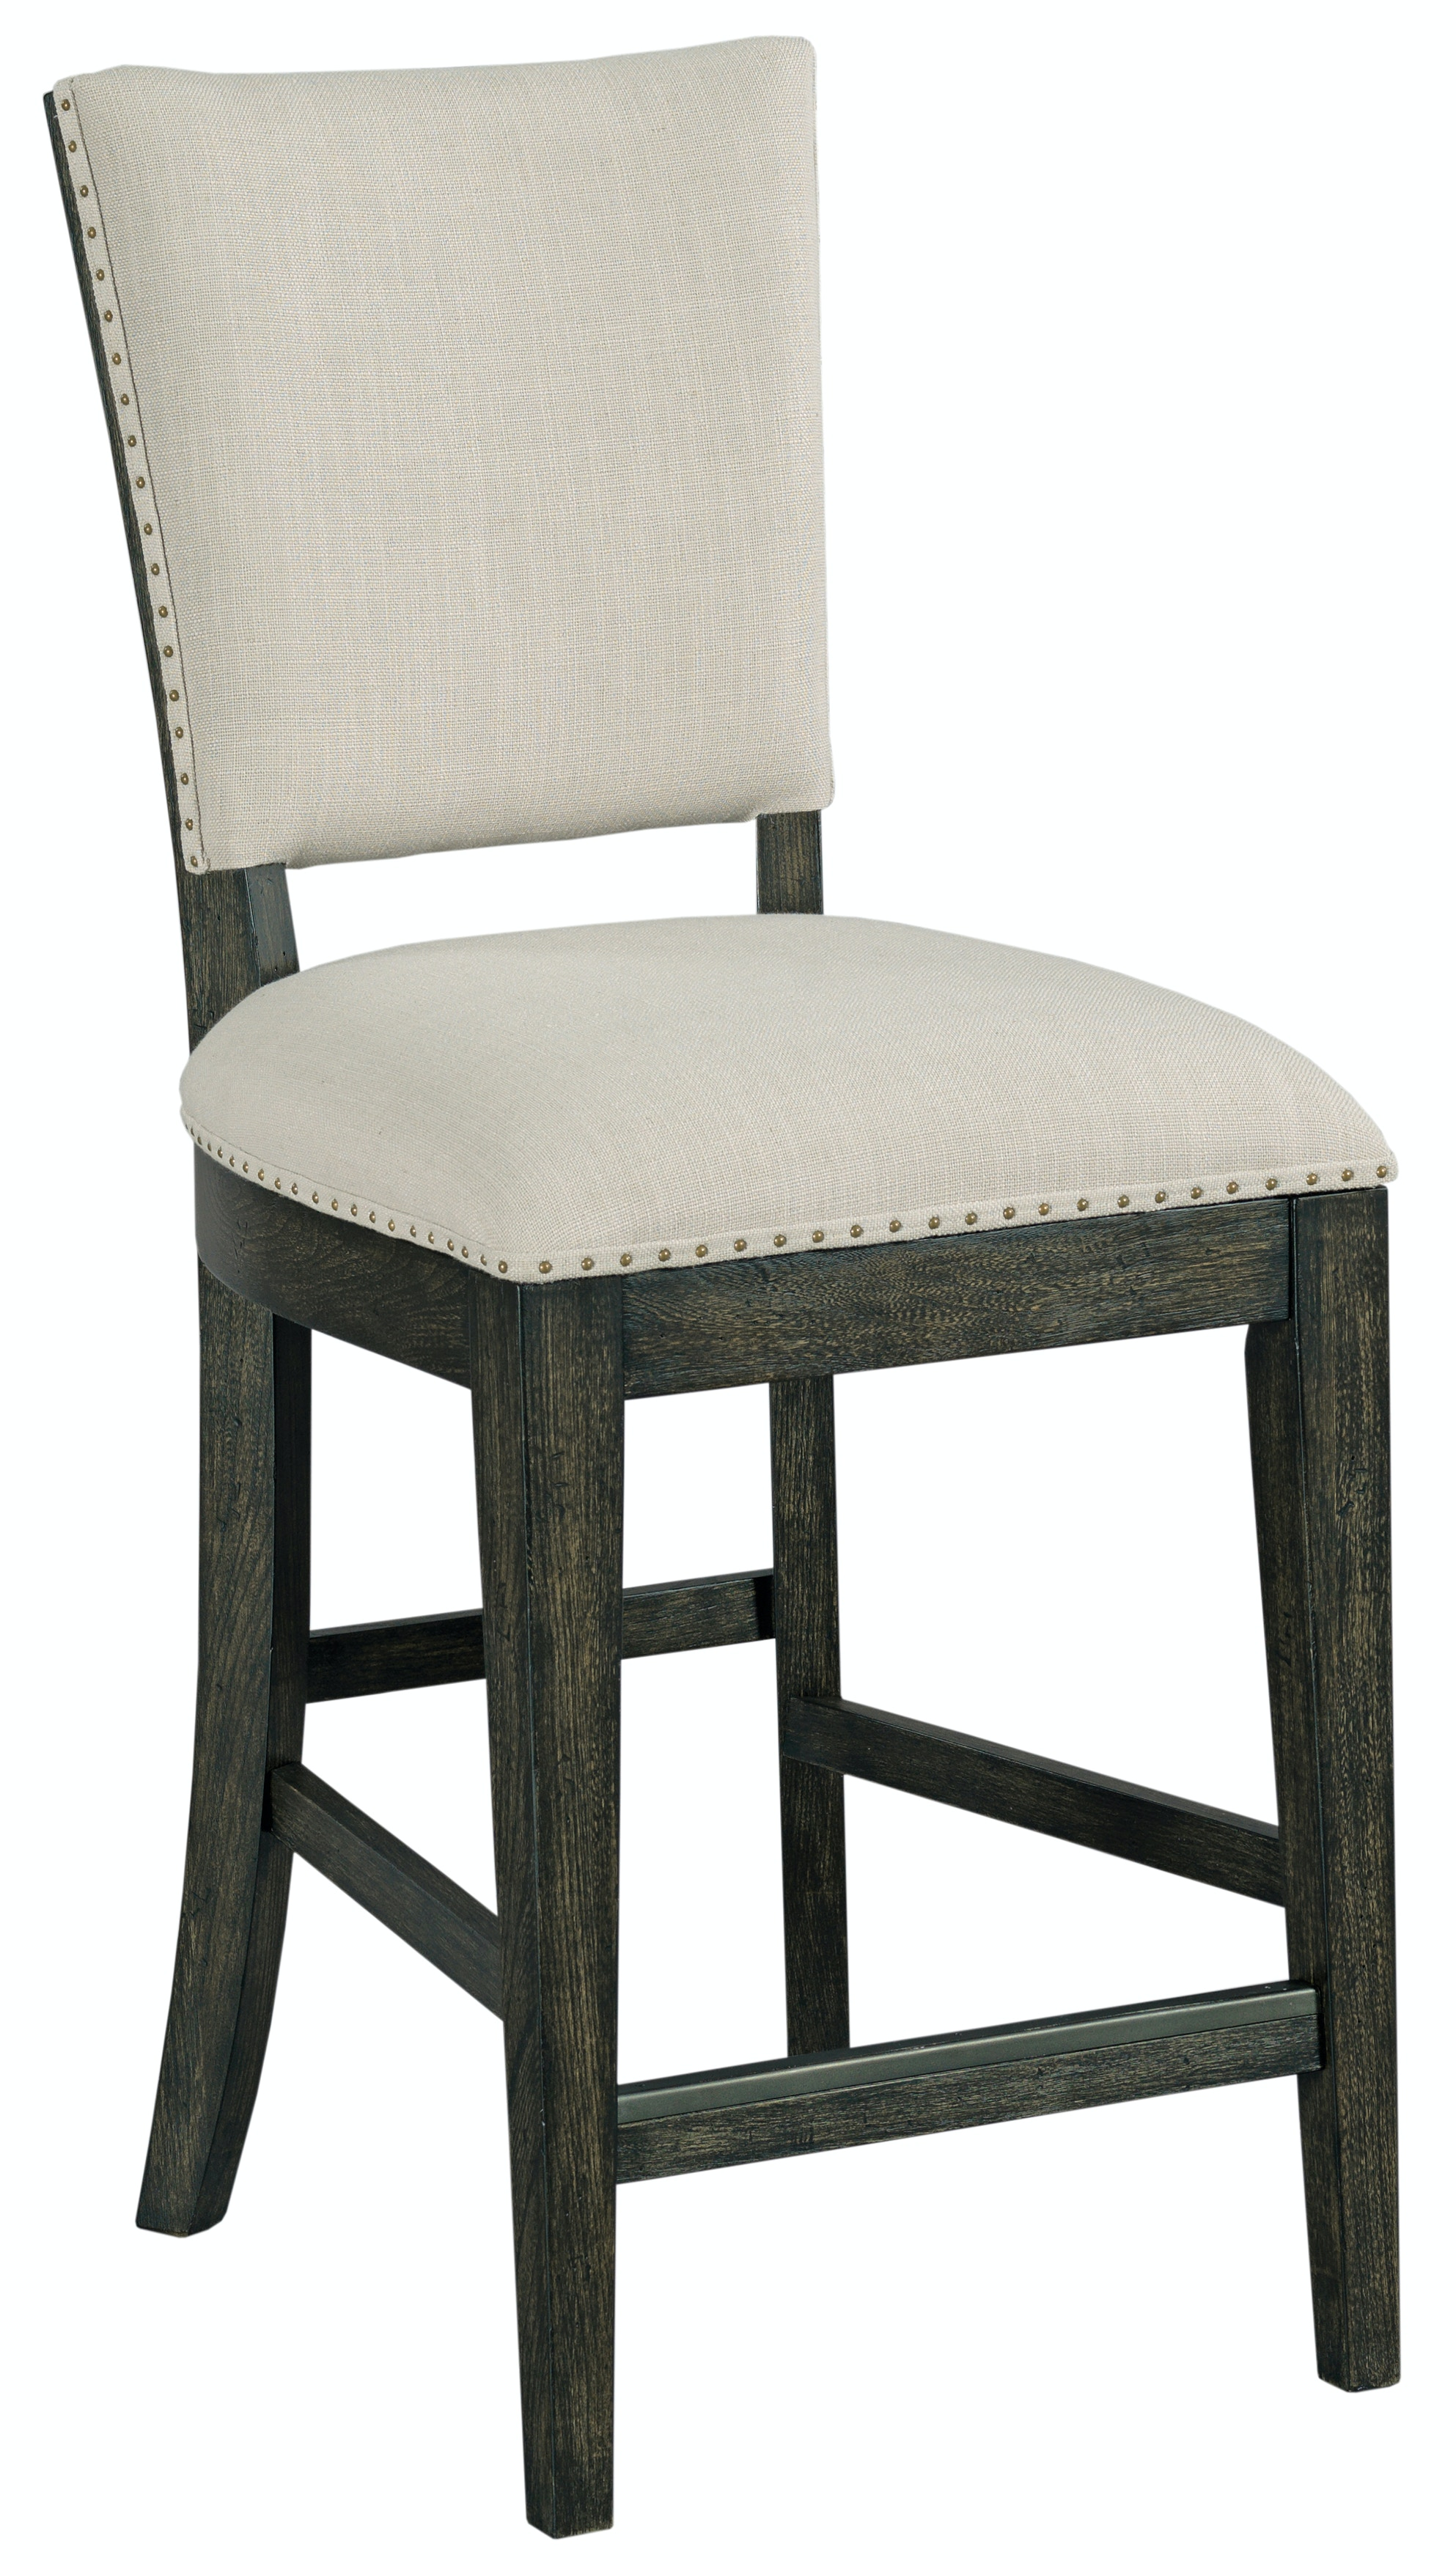 Plank Road Kimler Upholstered Counter Height Chair   CHARCOAL ST:488386